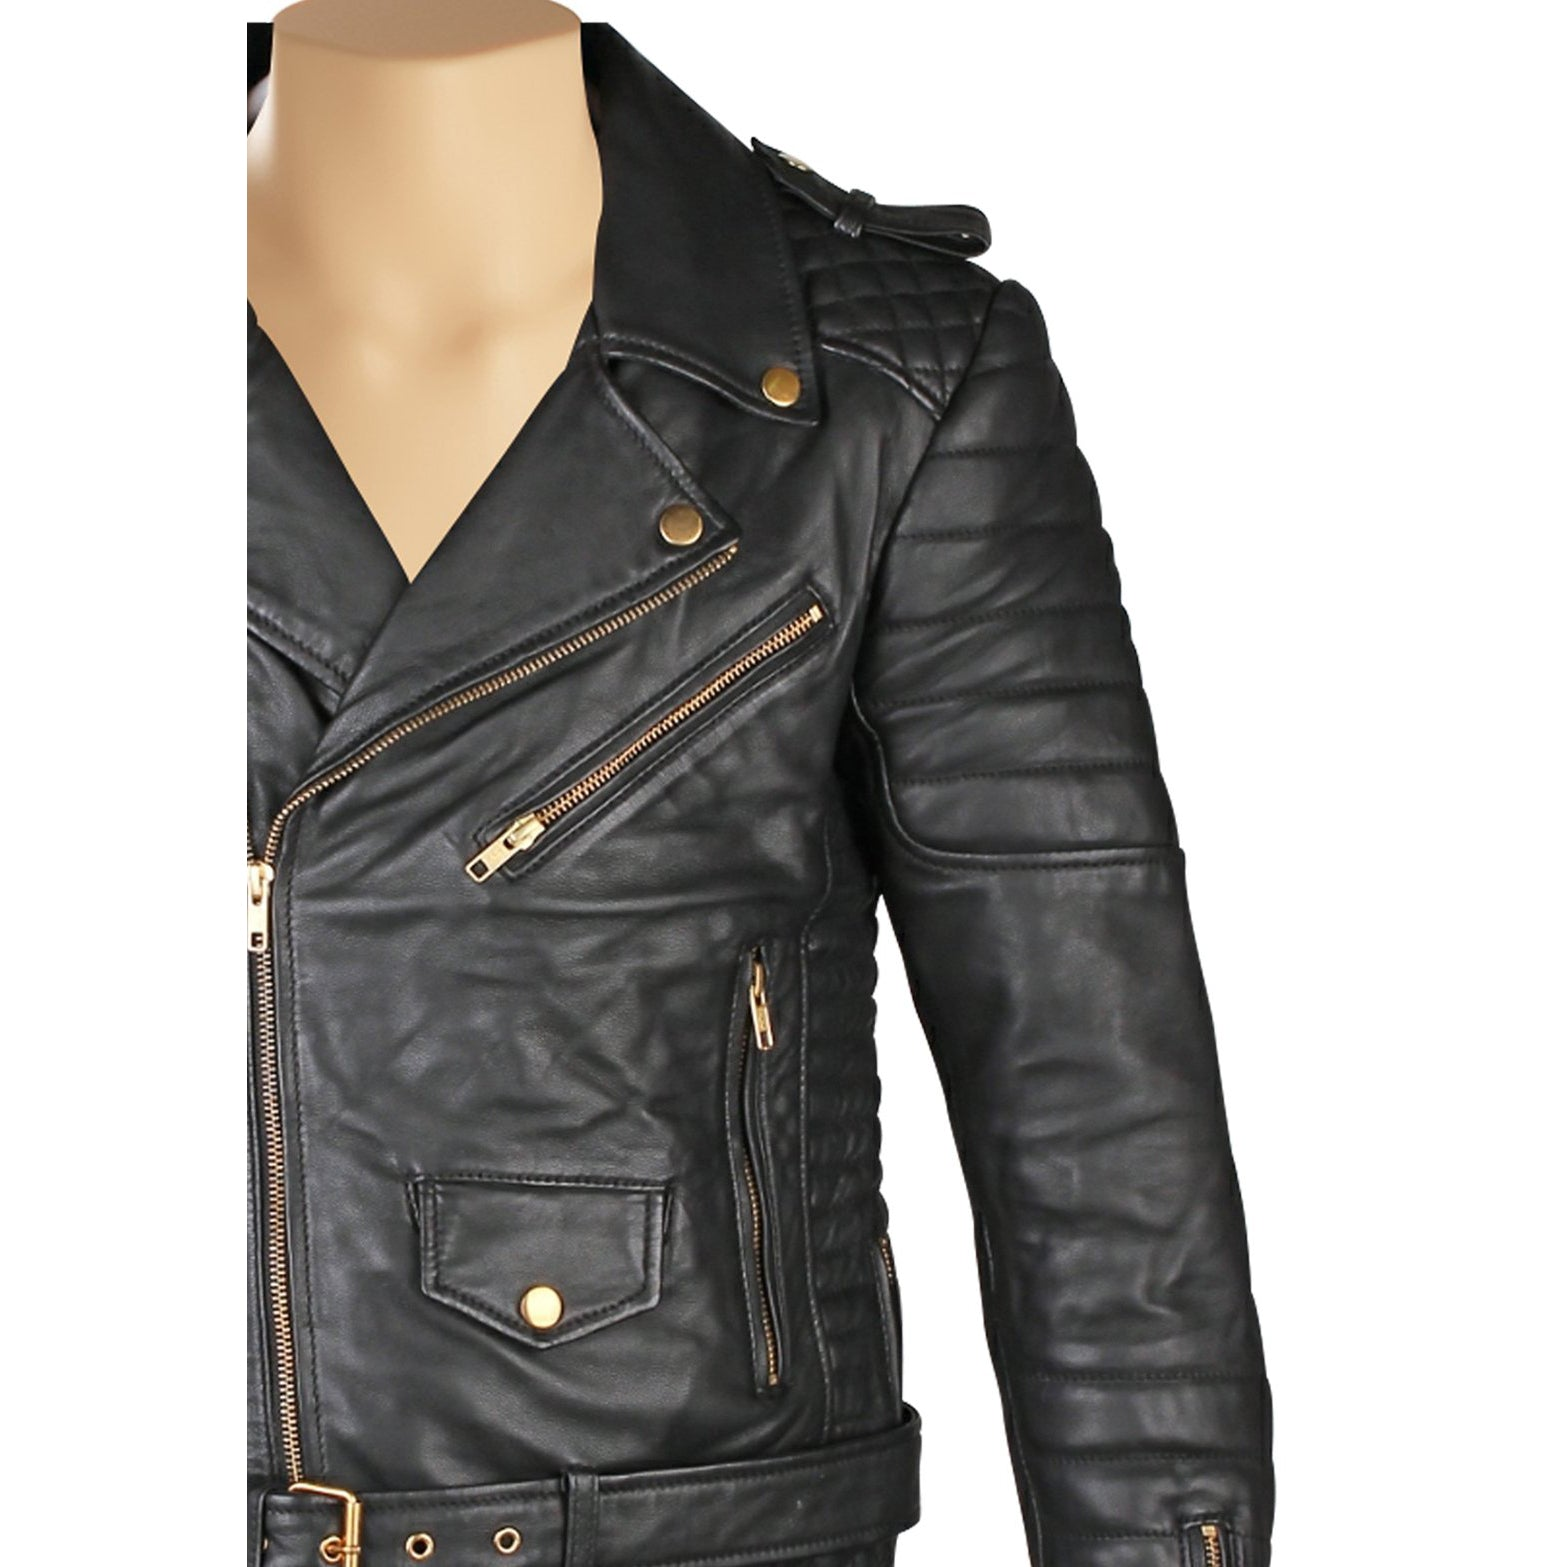 Mercado's quilted biker leather jacket with waist belt